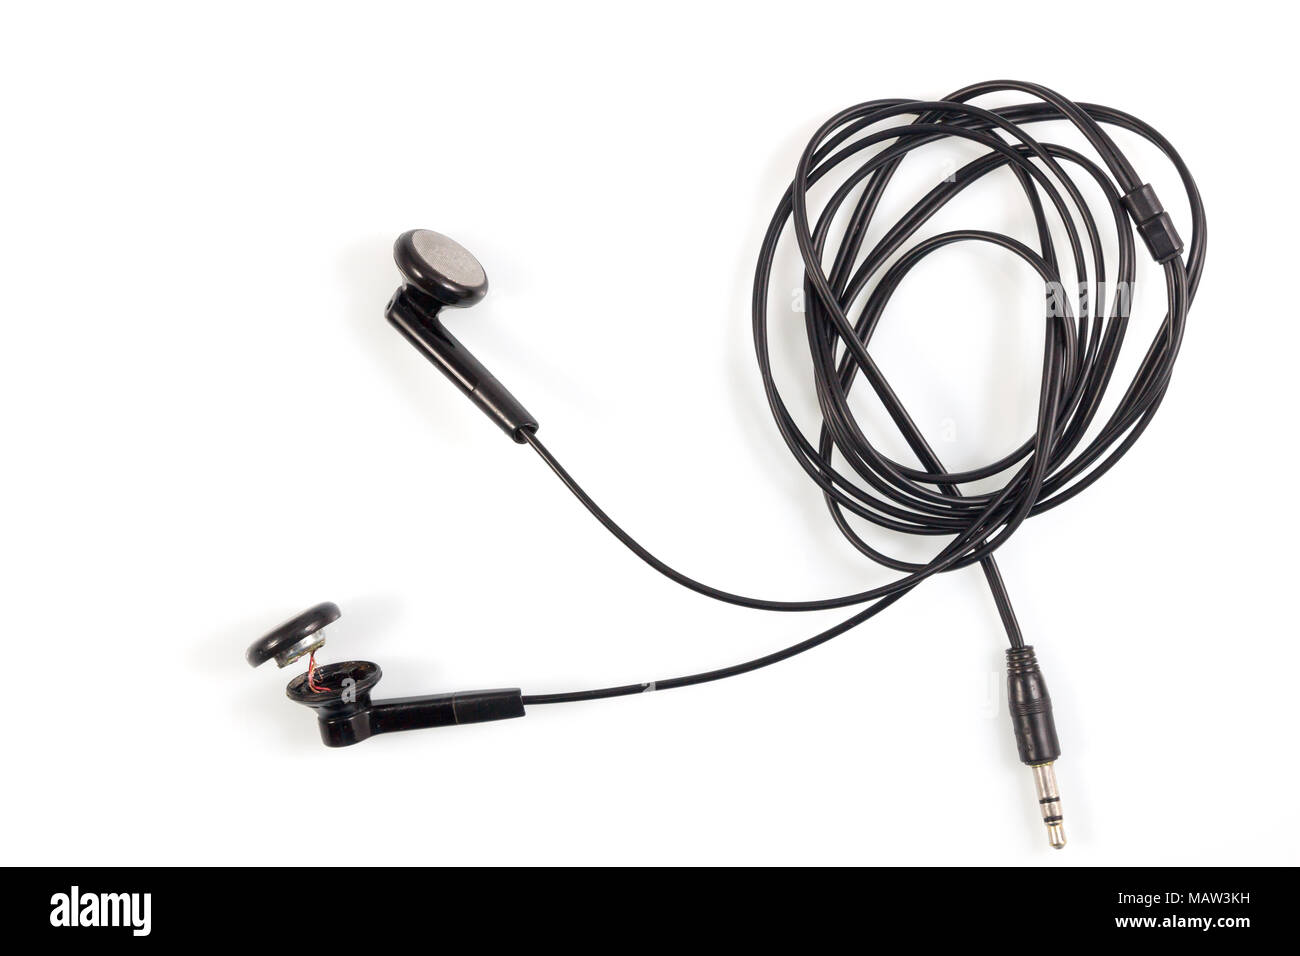 Top view of broken old black earphones or headphones on white ...